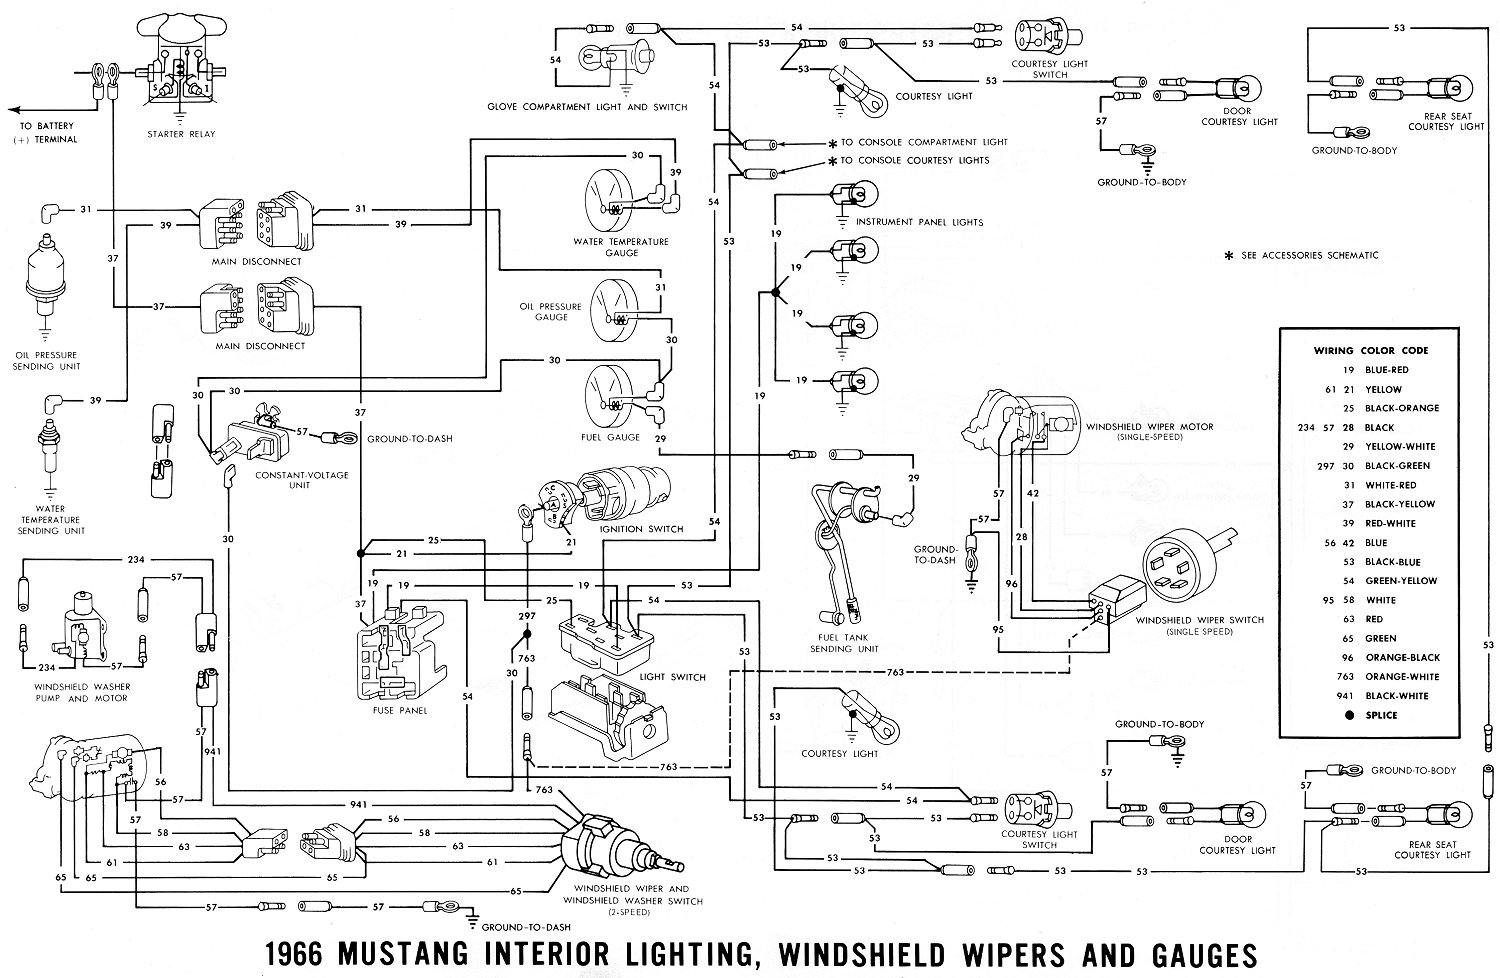 66inter1 1966 mustang wiring diagrams average joe restoration 1969 mustang voltage regulator wiring diagram at mifinder.co